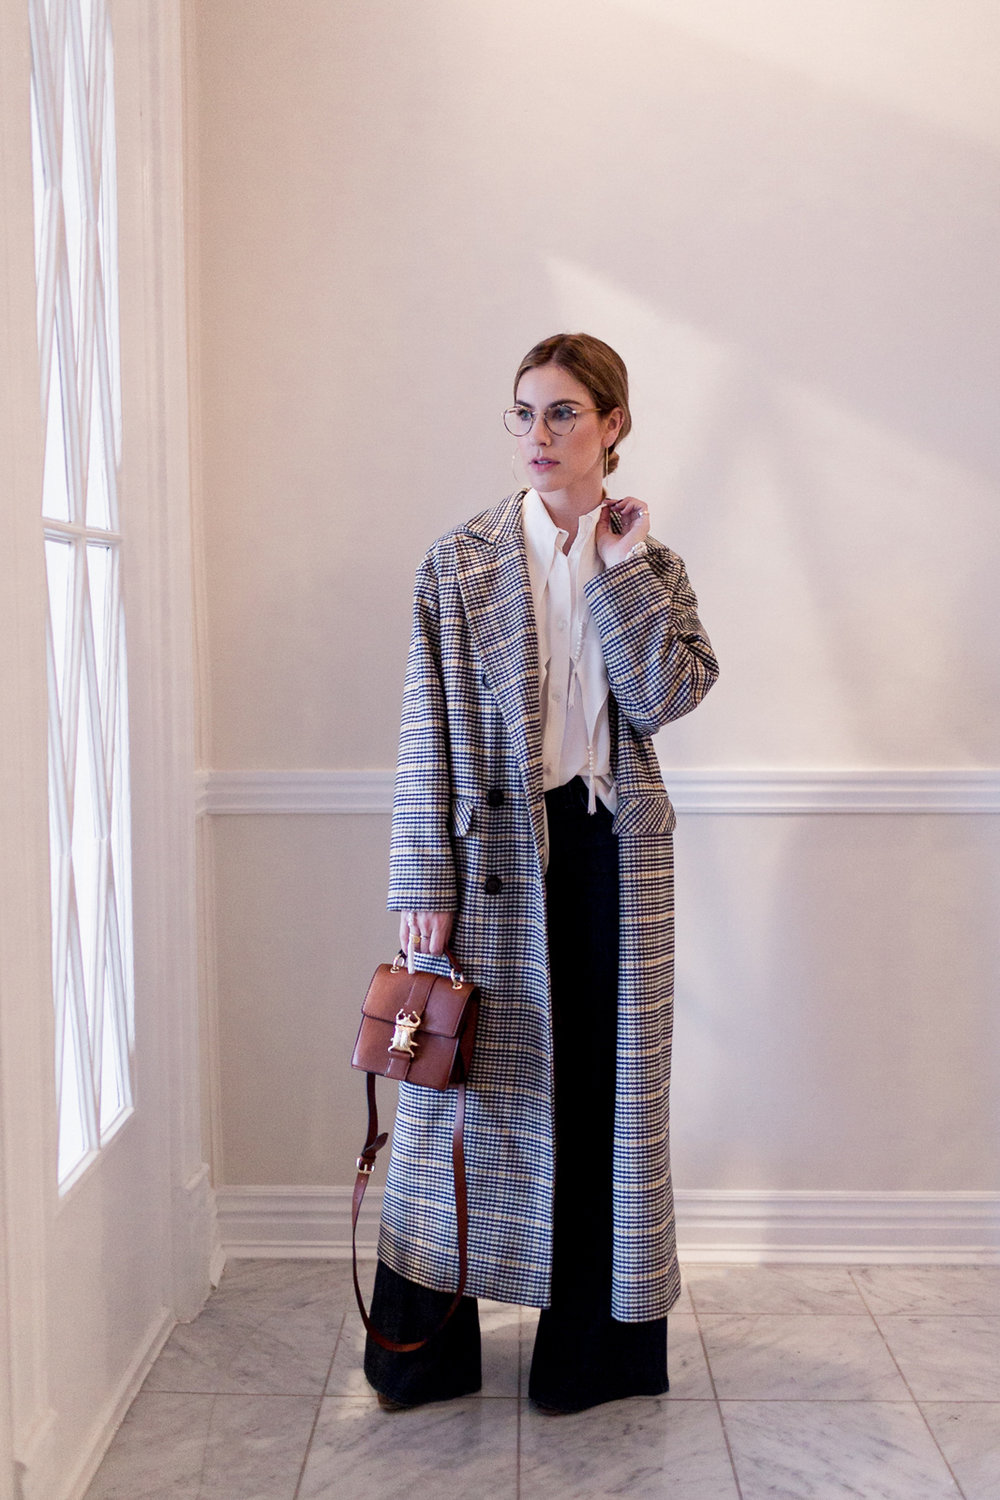 Eldridge Edit_anna_e_cottrell_fashion_blog_blogger_nordstrom_topshop_houndstooth_double_breasted_duster_coat_sale_topshop_garret_leight_glasses_thatch_lola_14k_gold_hoops_vintage_zara_bug_bag_mgb_photo_12.jpg